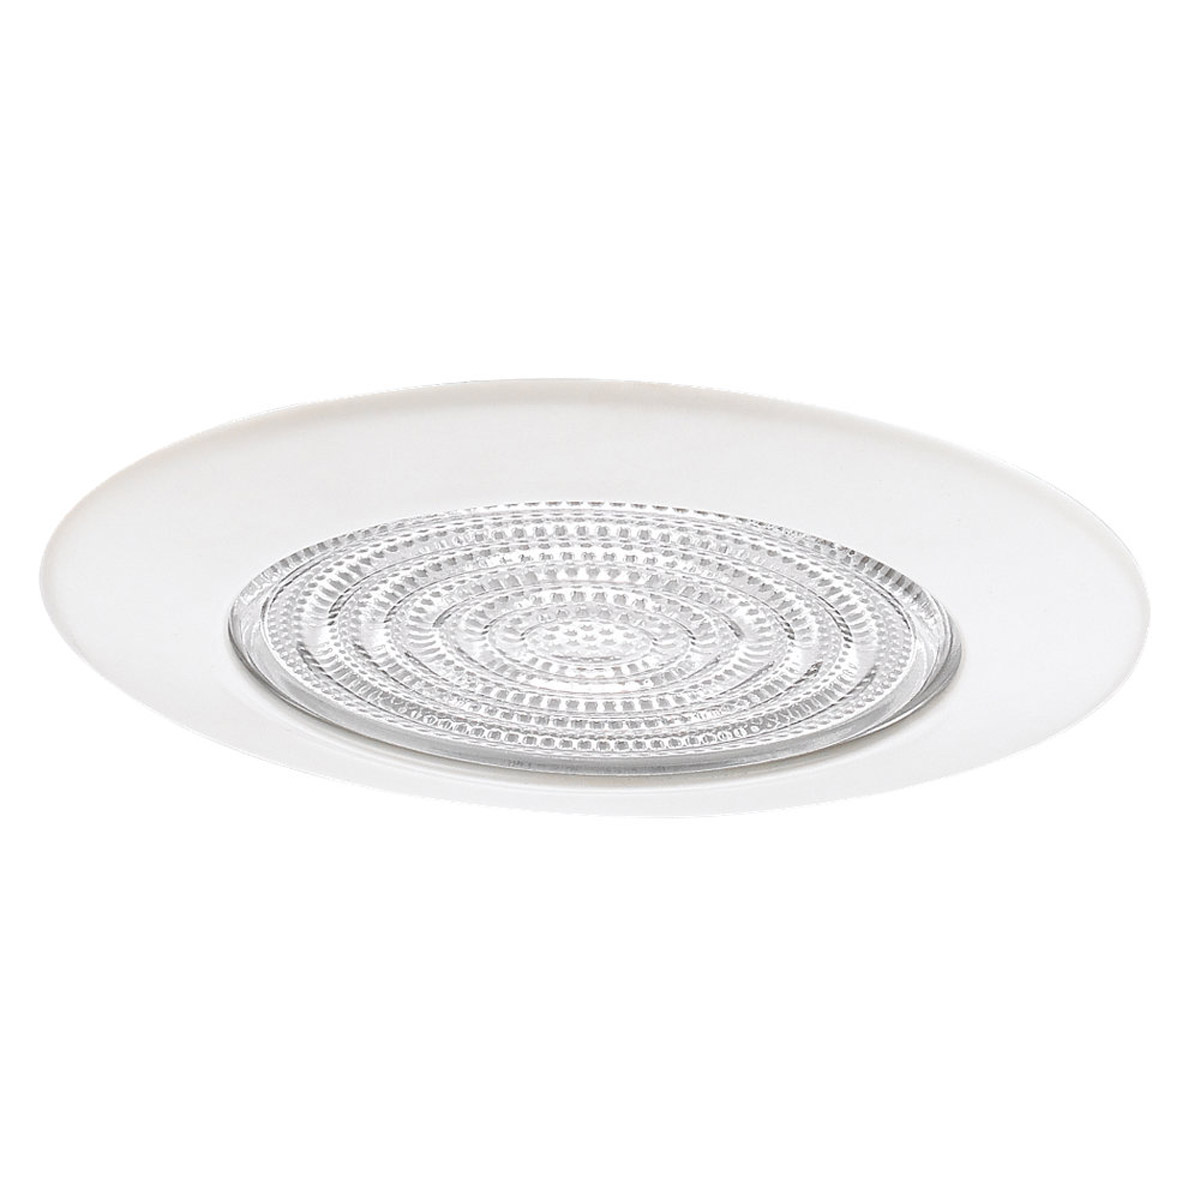 Sea Gull Lighting Signature Recessed Trim Only in White 11155AT-15